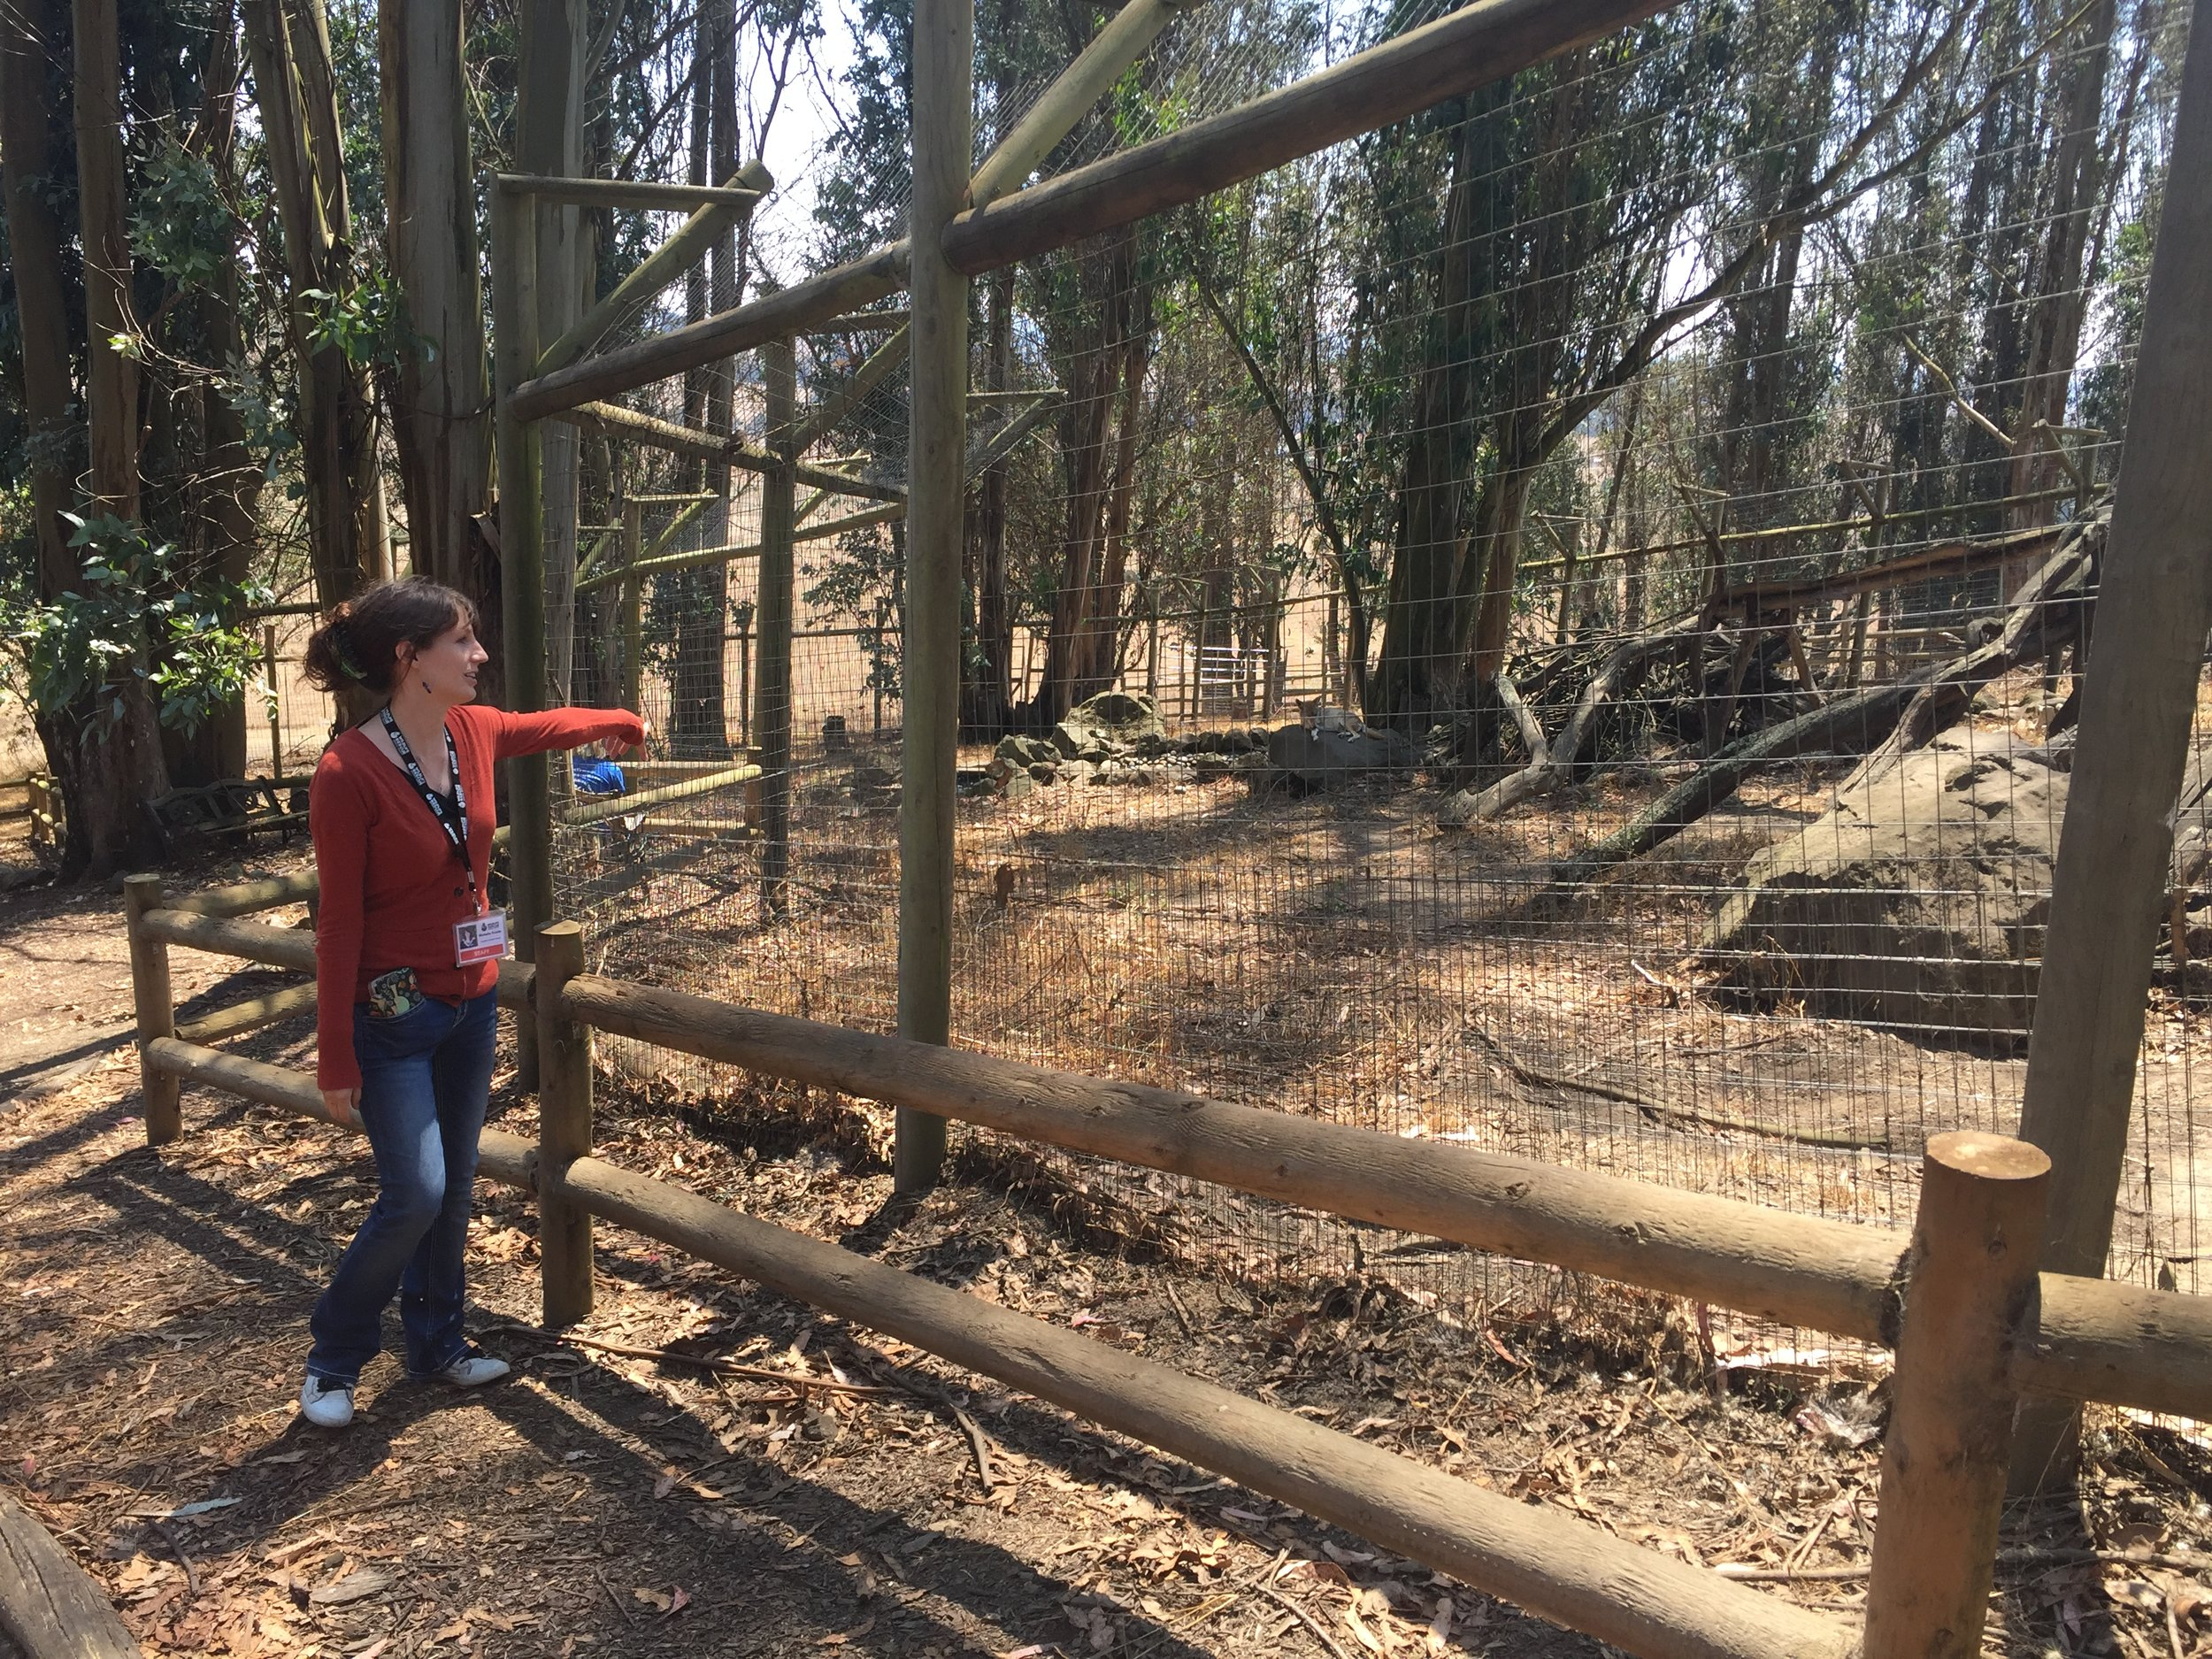 Education Outreach Director Michelle Fowler shows educators the coyote enclosure, asking everyone not to howl at the residents.